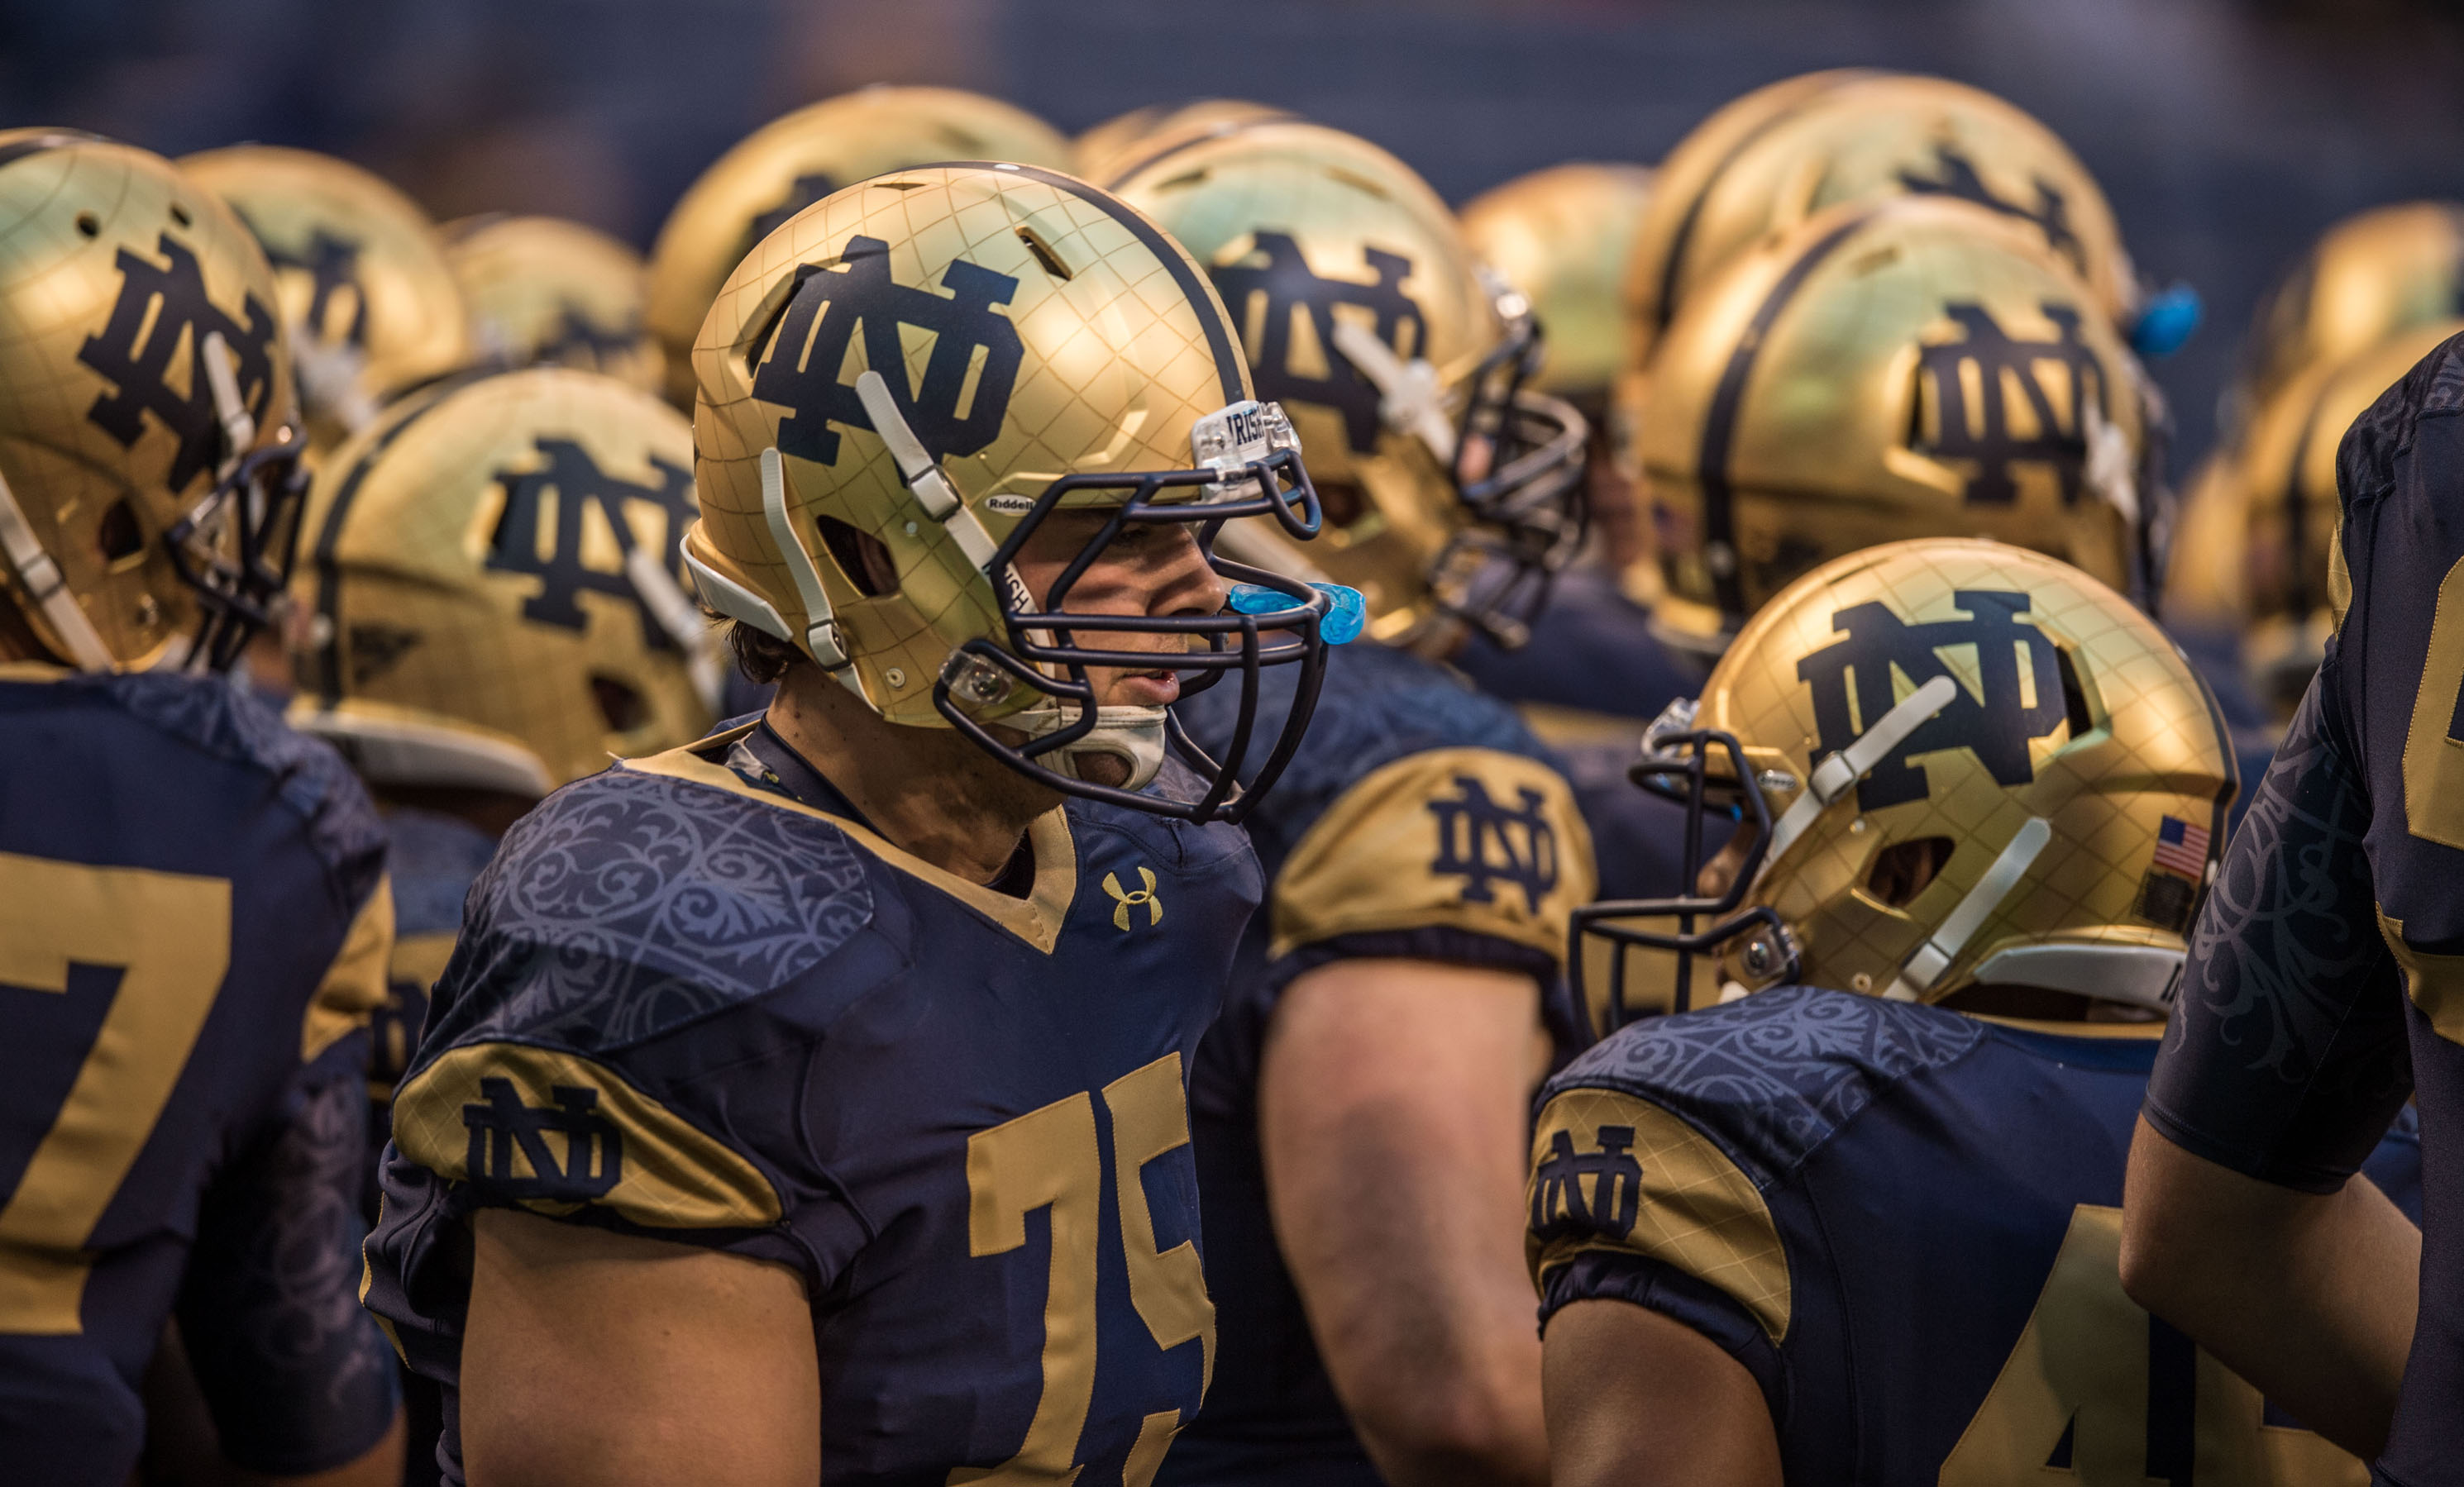 Notre Dame Fighting Irish Football Team Player Wallpaper HD